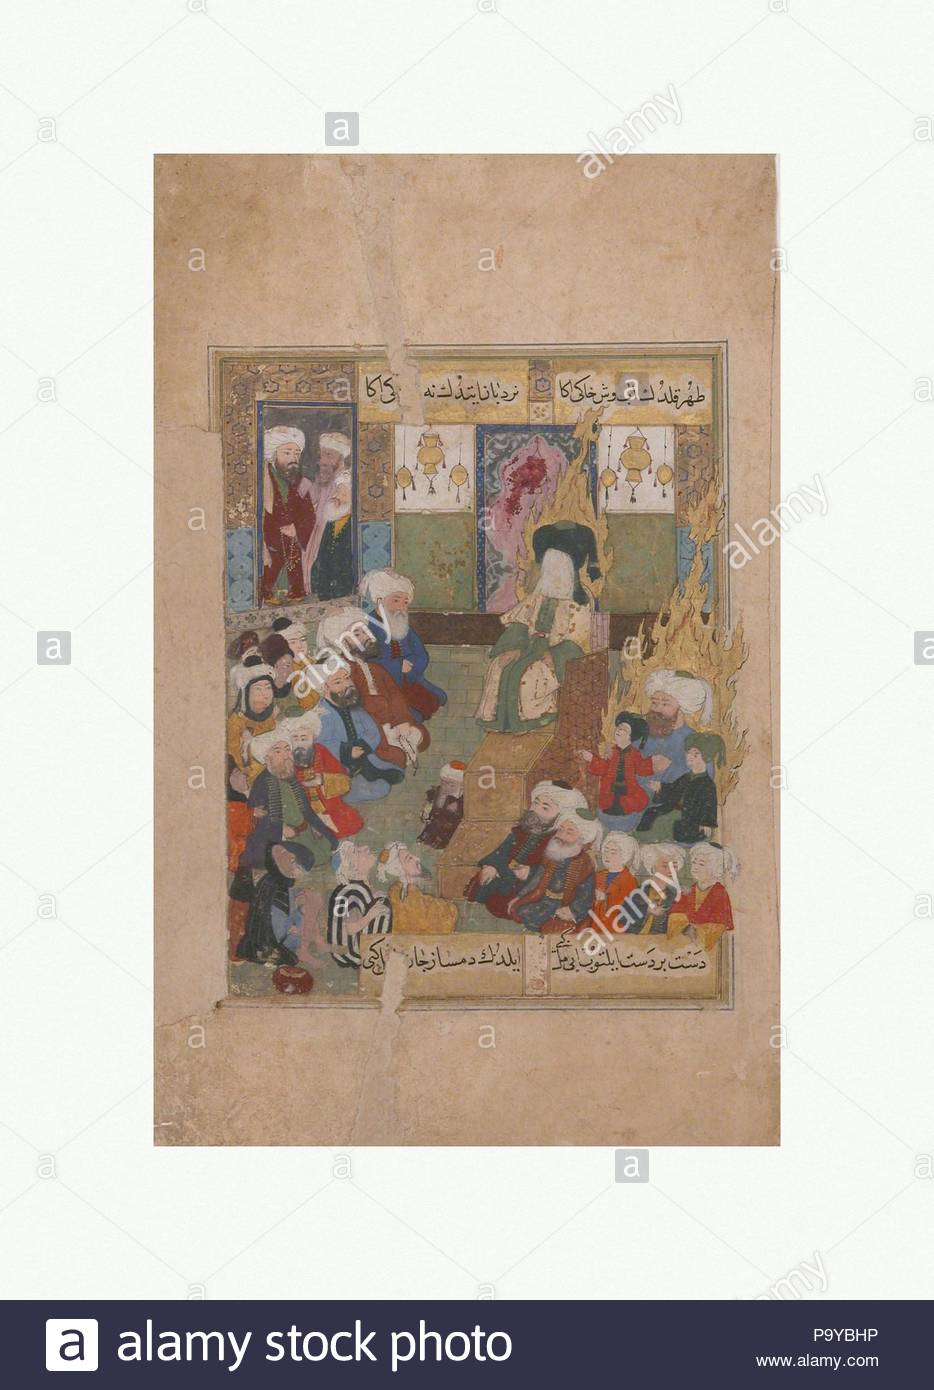 'Prophet Muhammad Preaching', Folio from a Maqtal-i Al-i Rasul of Lami'i Chelebi, late 16th century, Attributed to Turkey or Iraq, Ink, opaque watercolor, and gold on paper, H. 7 13/16 in. (19.8 cm), Codices, The text to which this detached page once belonged, entitled 'The Murder of the House of the Prophet', tells the story of the martyrdom of Husayn ibn 'Ali, one of Muhammad's grandsons and 'Ali's son. His assasination at the battle of Karbala, in present-day Iraq, represented a turning point for the Muslim community and is the origin of the main division between the Sunni and Shi'i sects. - Stock Image